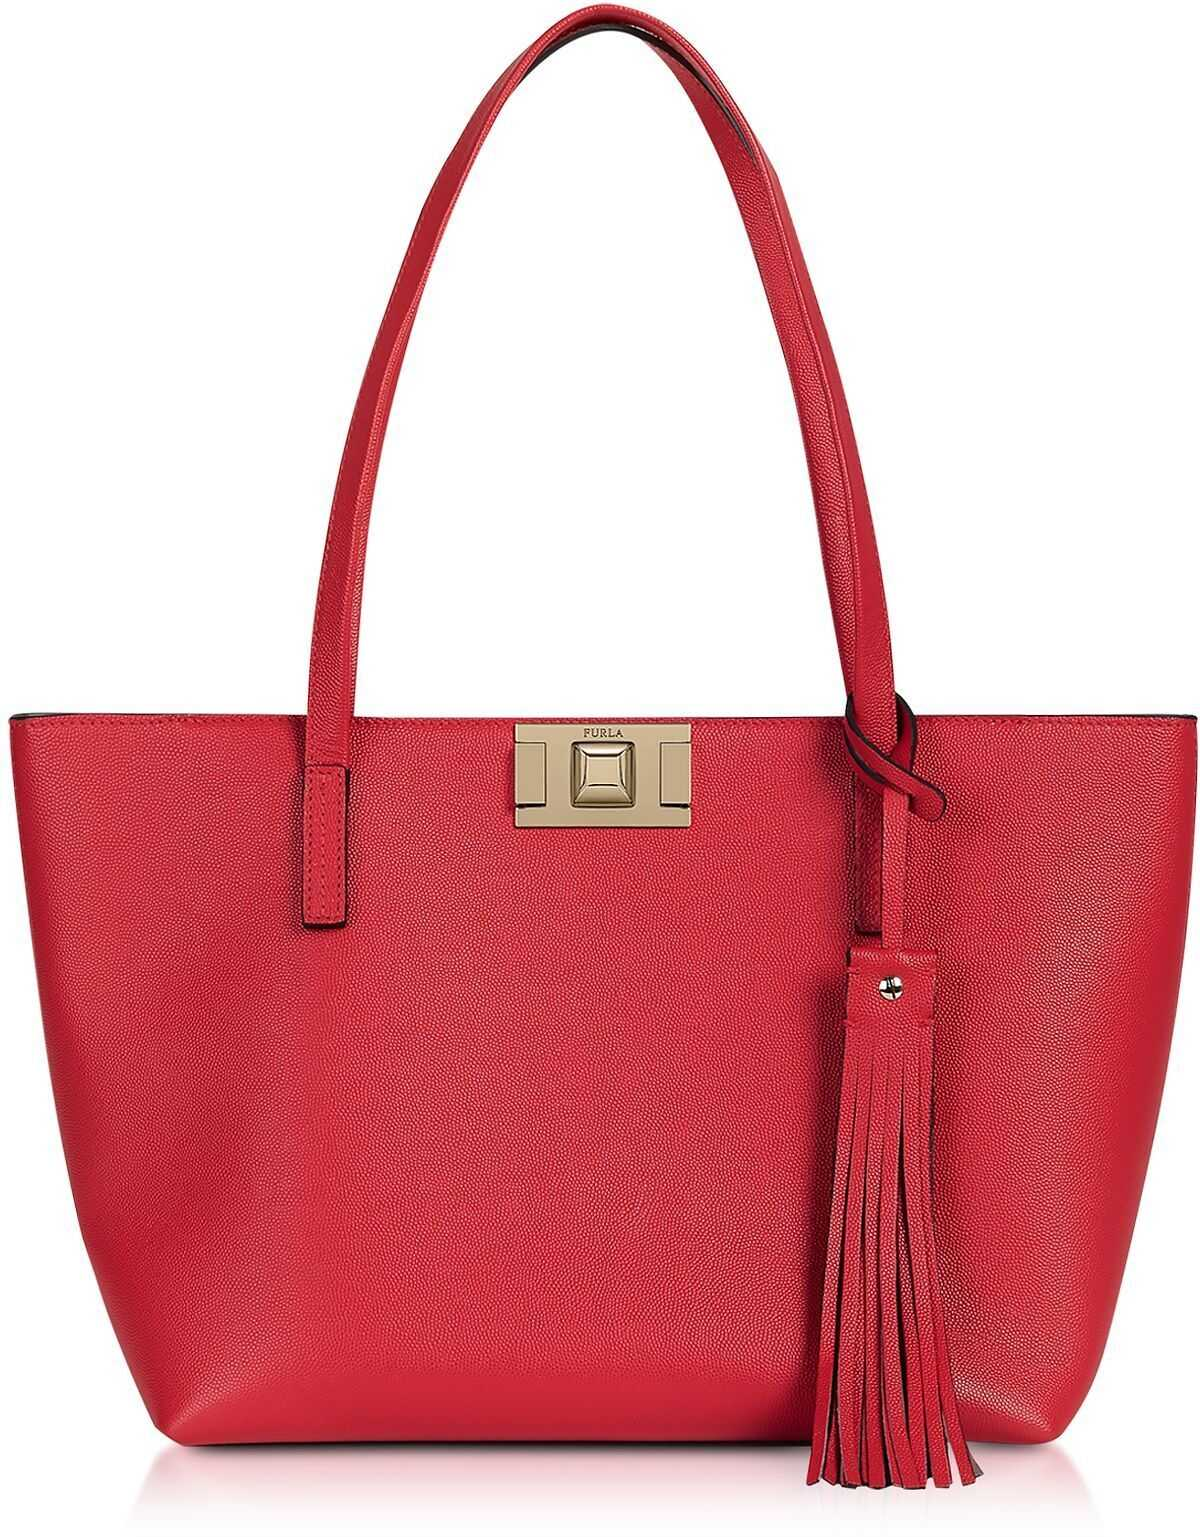 Furla Leather Tote RED